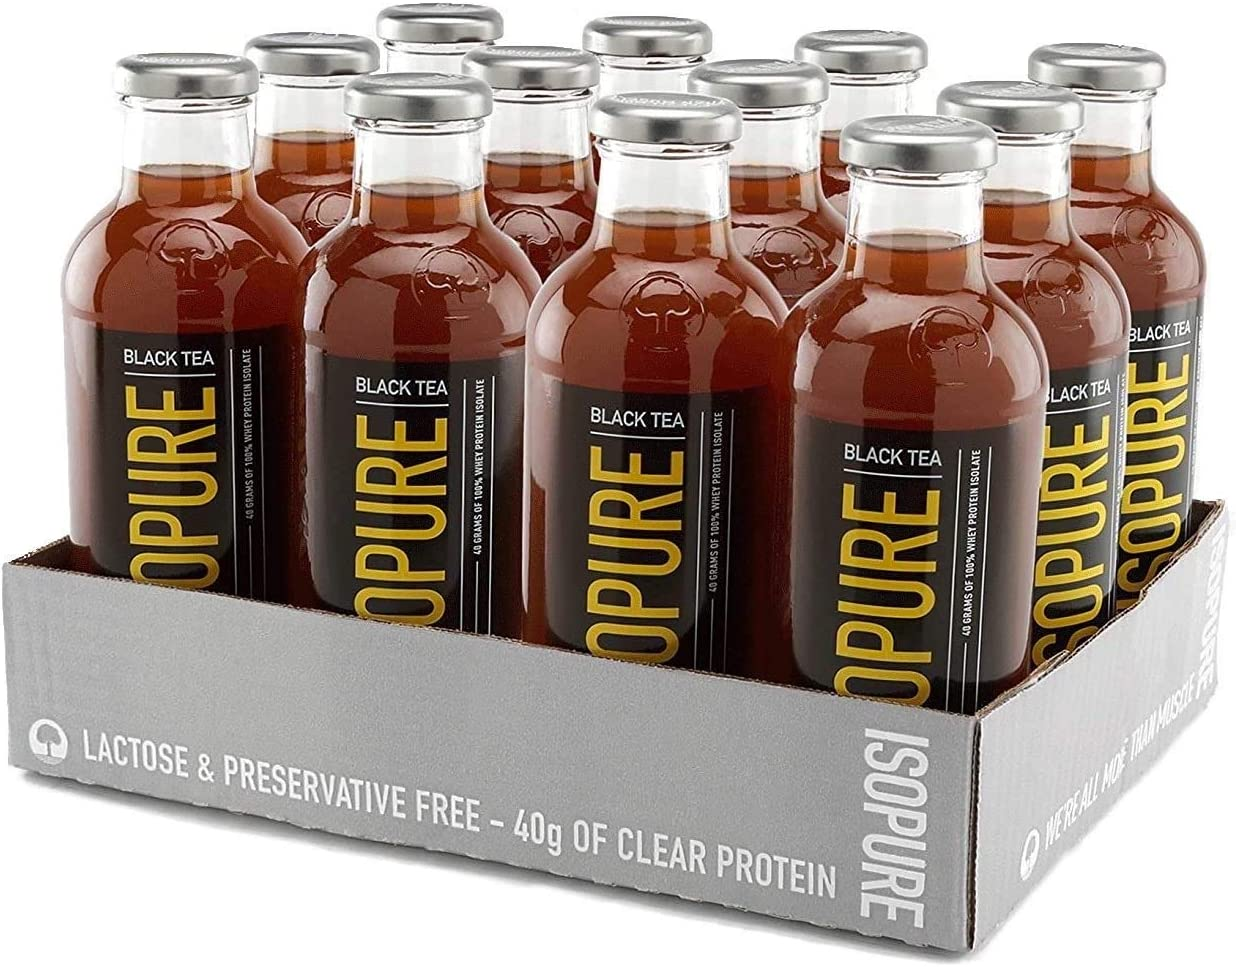 Isopure 40g Protein, Zero Carb Ready-To-Drink- Black Tea Lemon, 20 Ounce (Pack of 12)